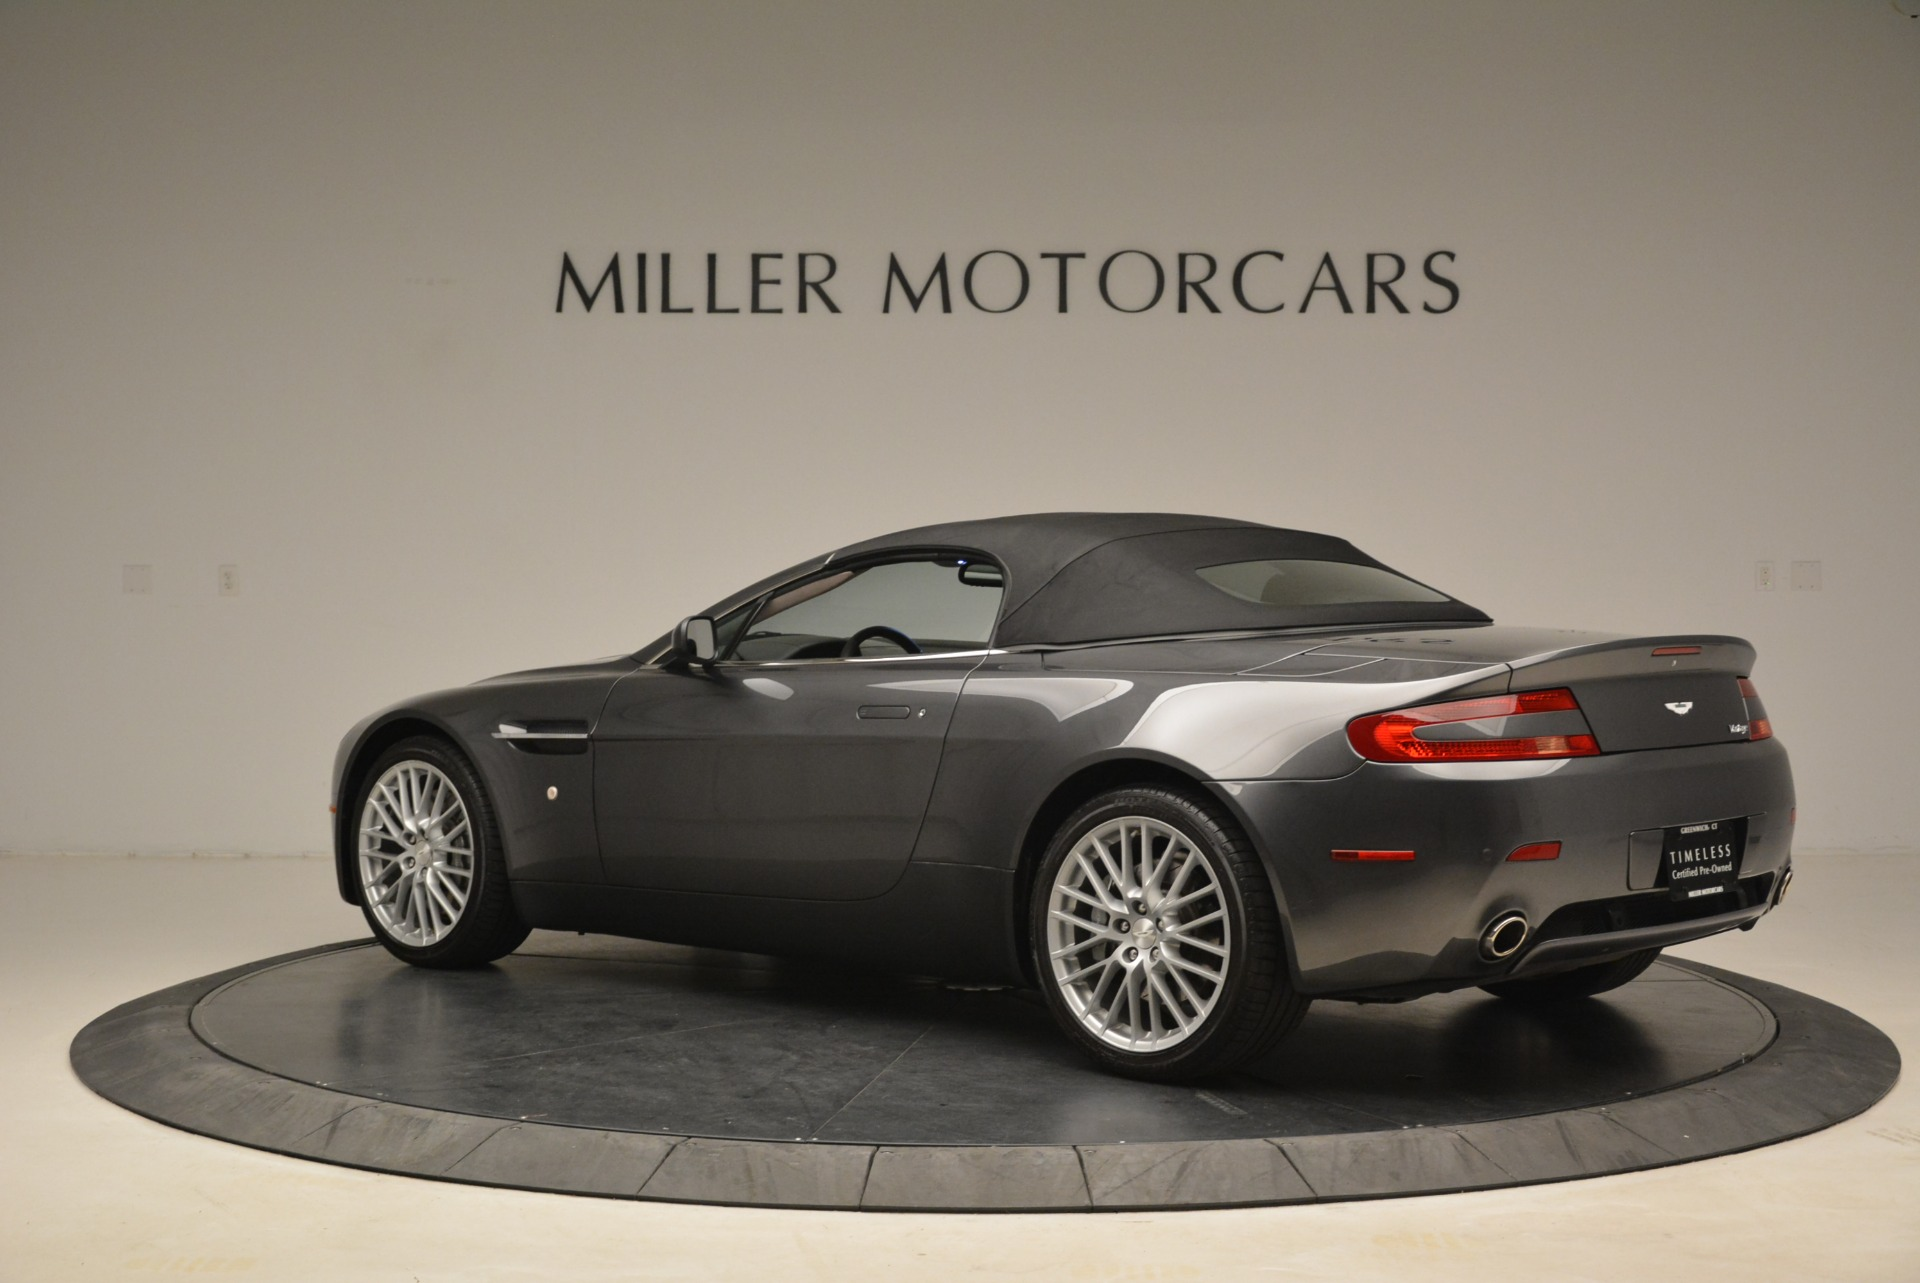 Used 2009 Aston Martin V8 Vantage Roadster For Sale In Greenwich, CT 2123_p16